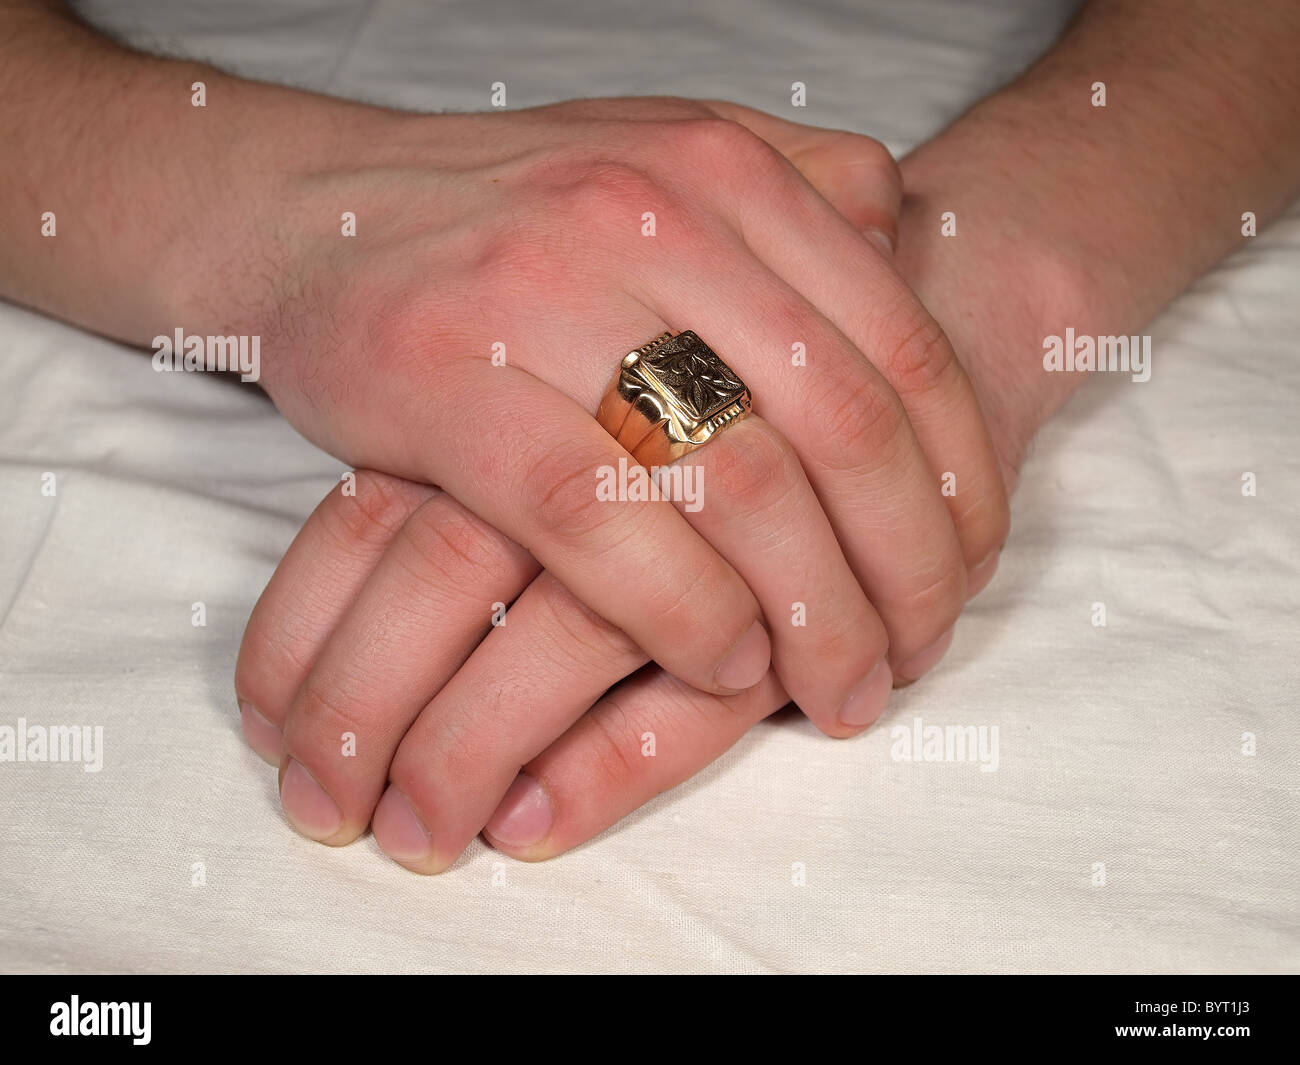 Man\'s hand with a gold ring on his finger against a white tablecloth ...